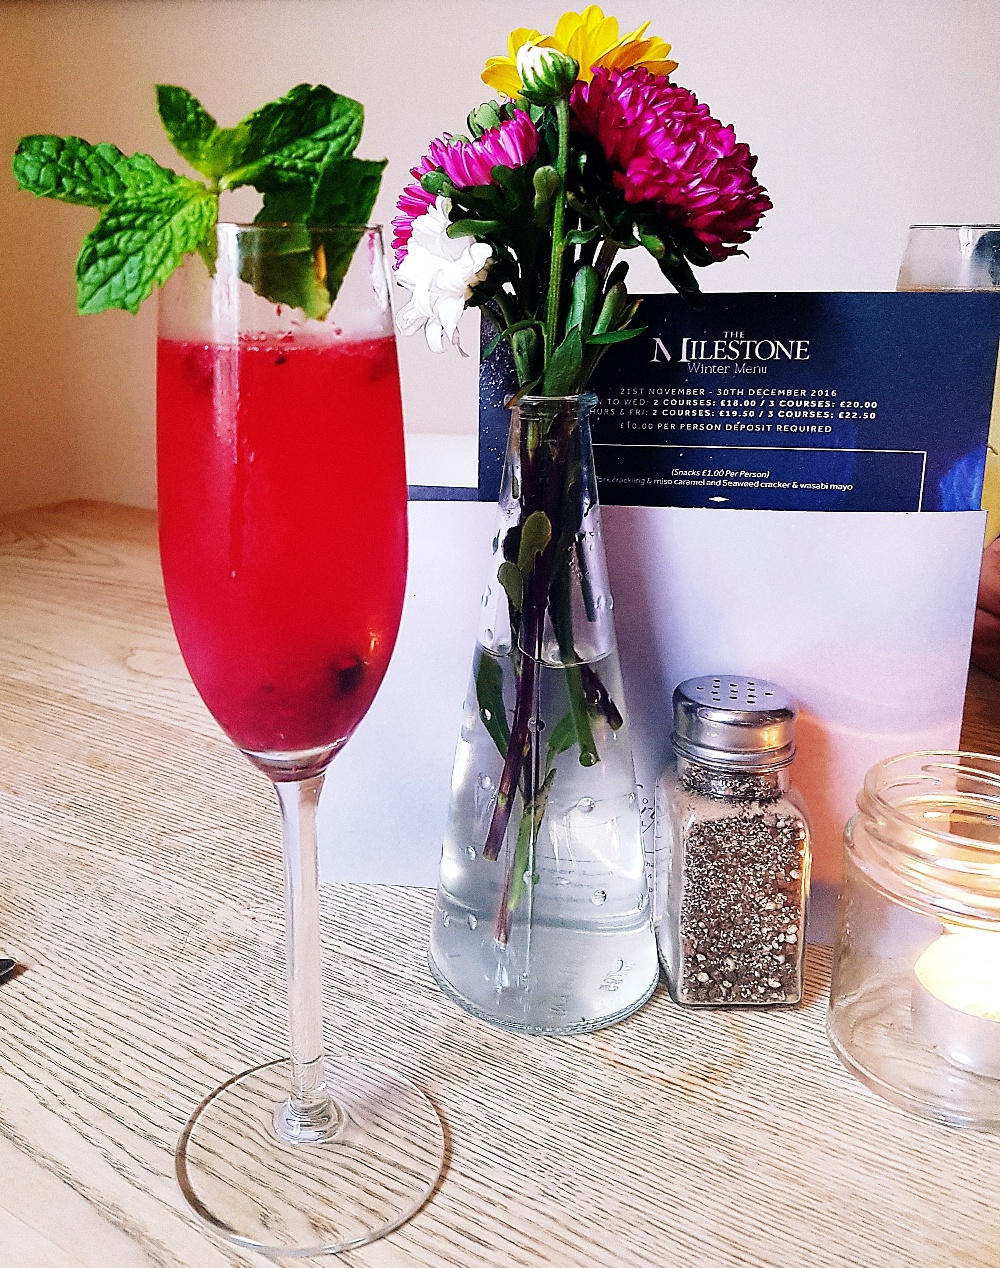 Hedgerow summer berry bellini at the Milestone Sheffield